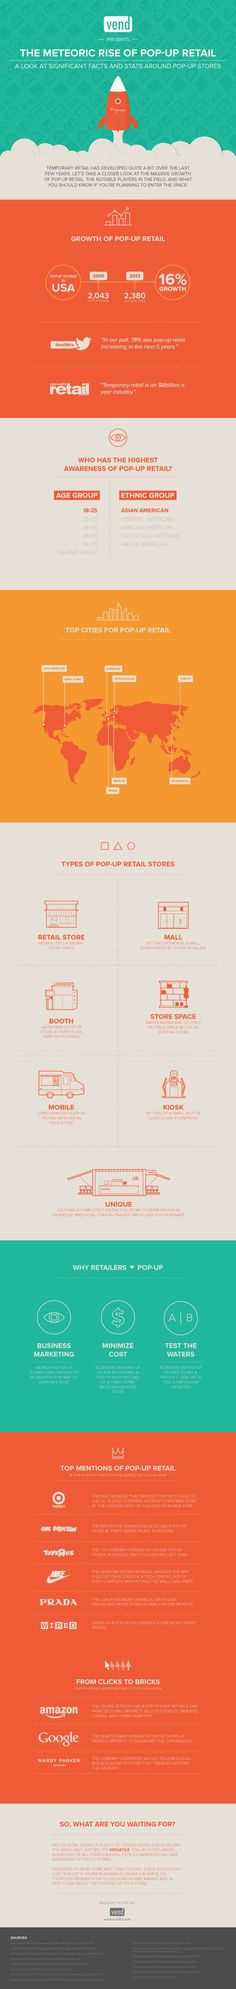 The Meteoric Rise of Pop-up Retail: A look at significant facts and stats around pop-up stores